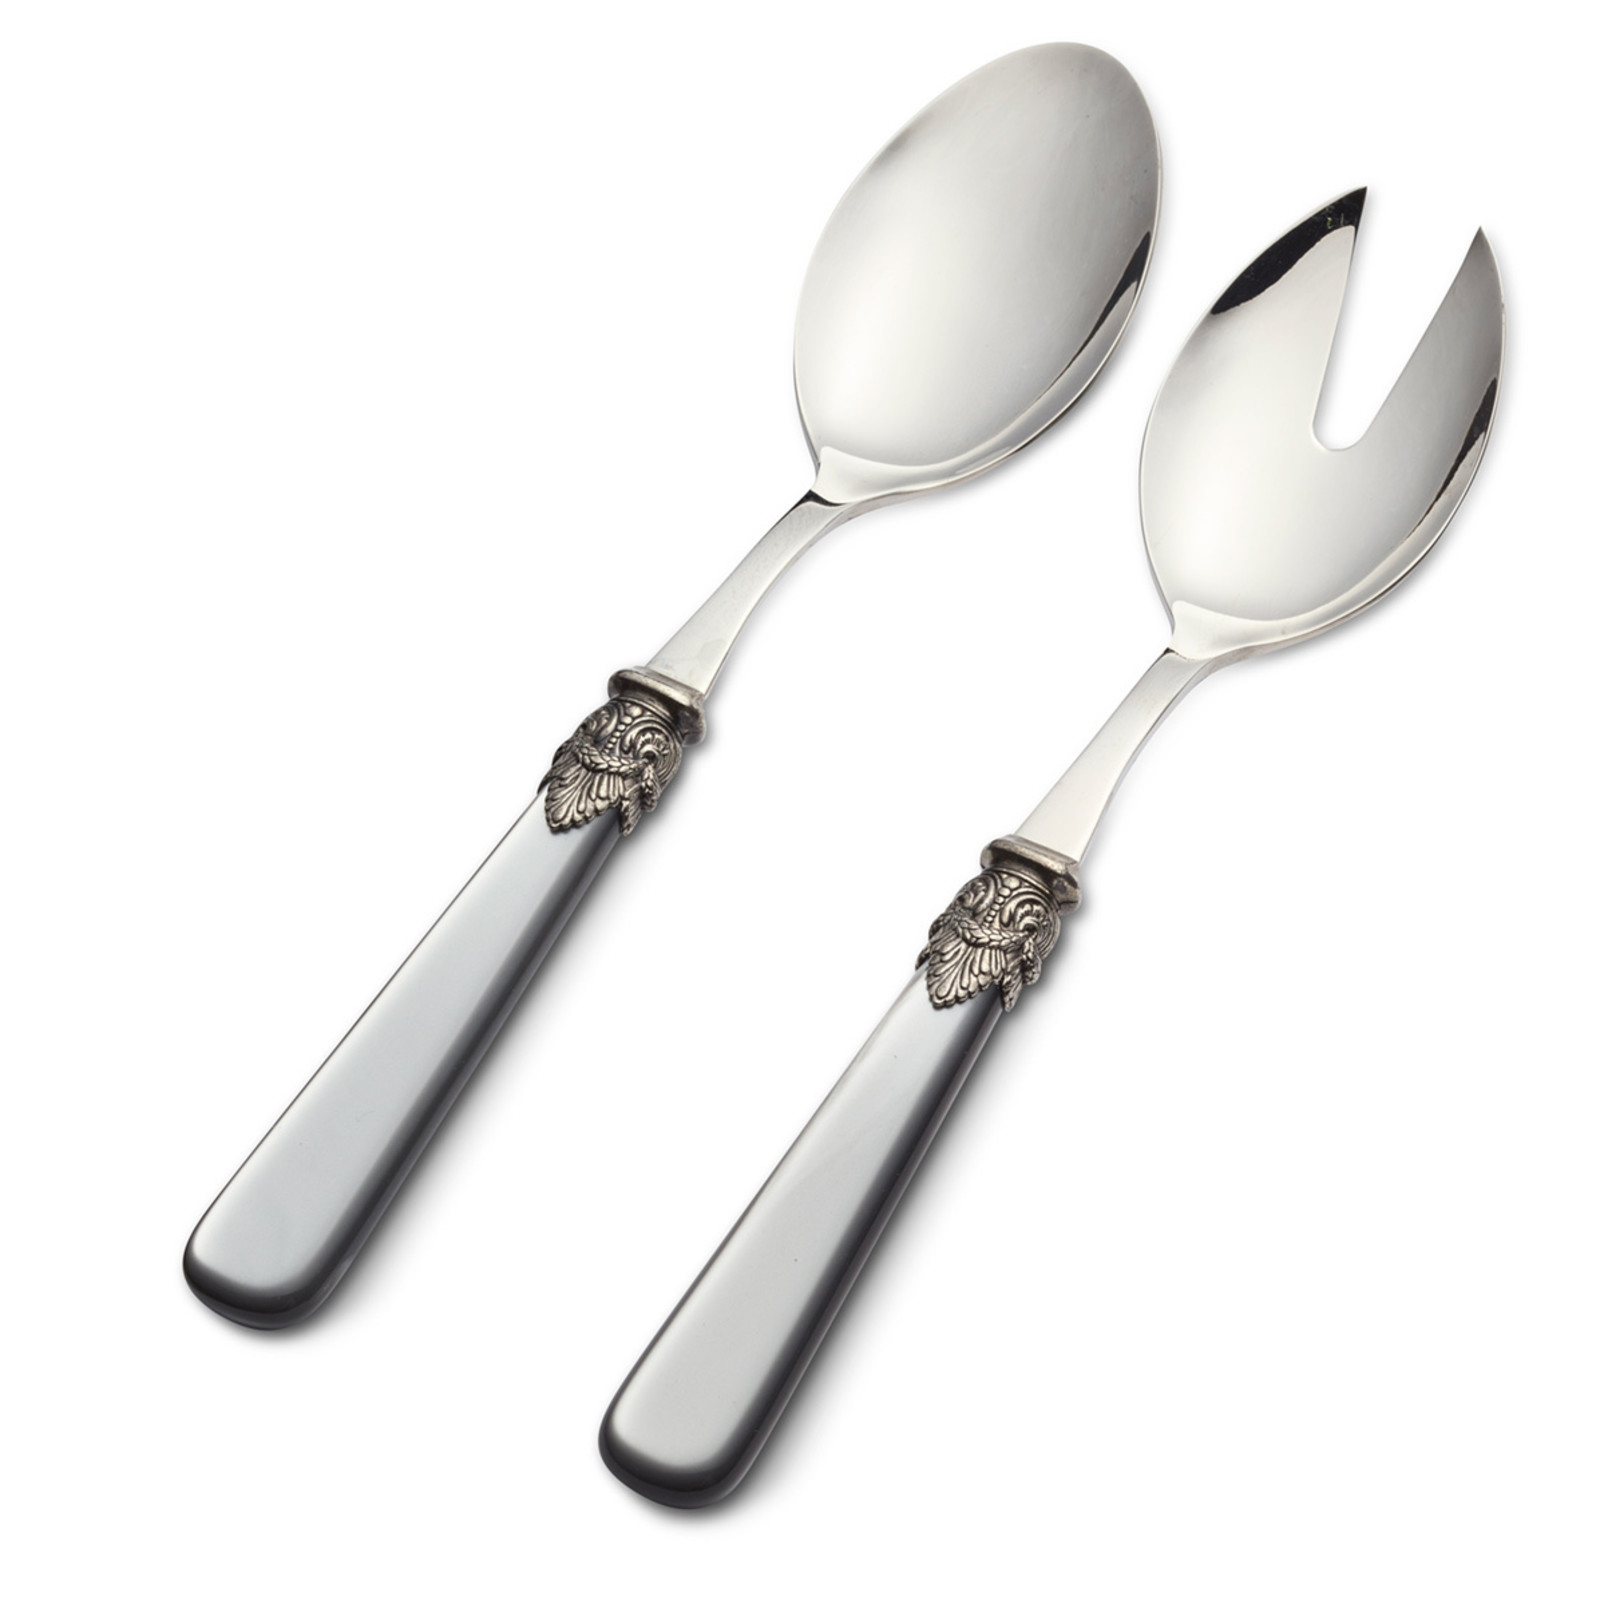 Salad cutlery set, 2-piece (salad spoon and salad fork)  Gray with Mother of Pearl